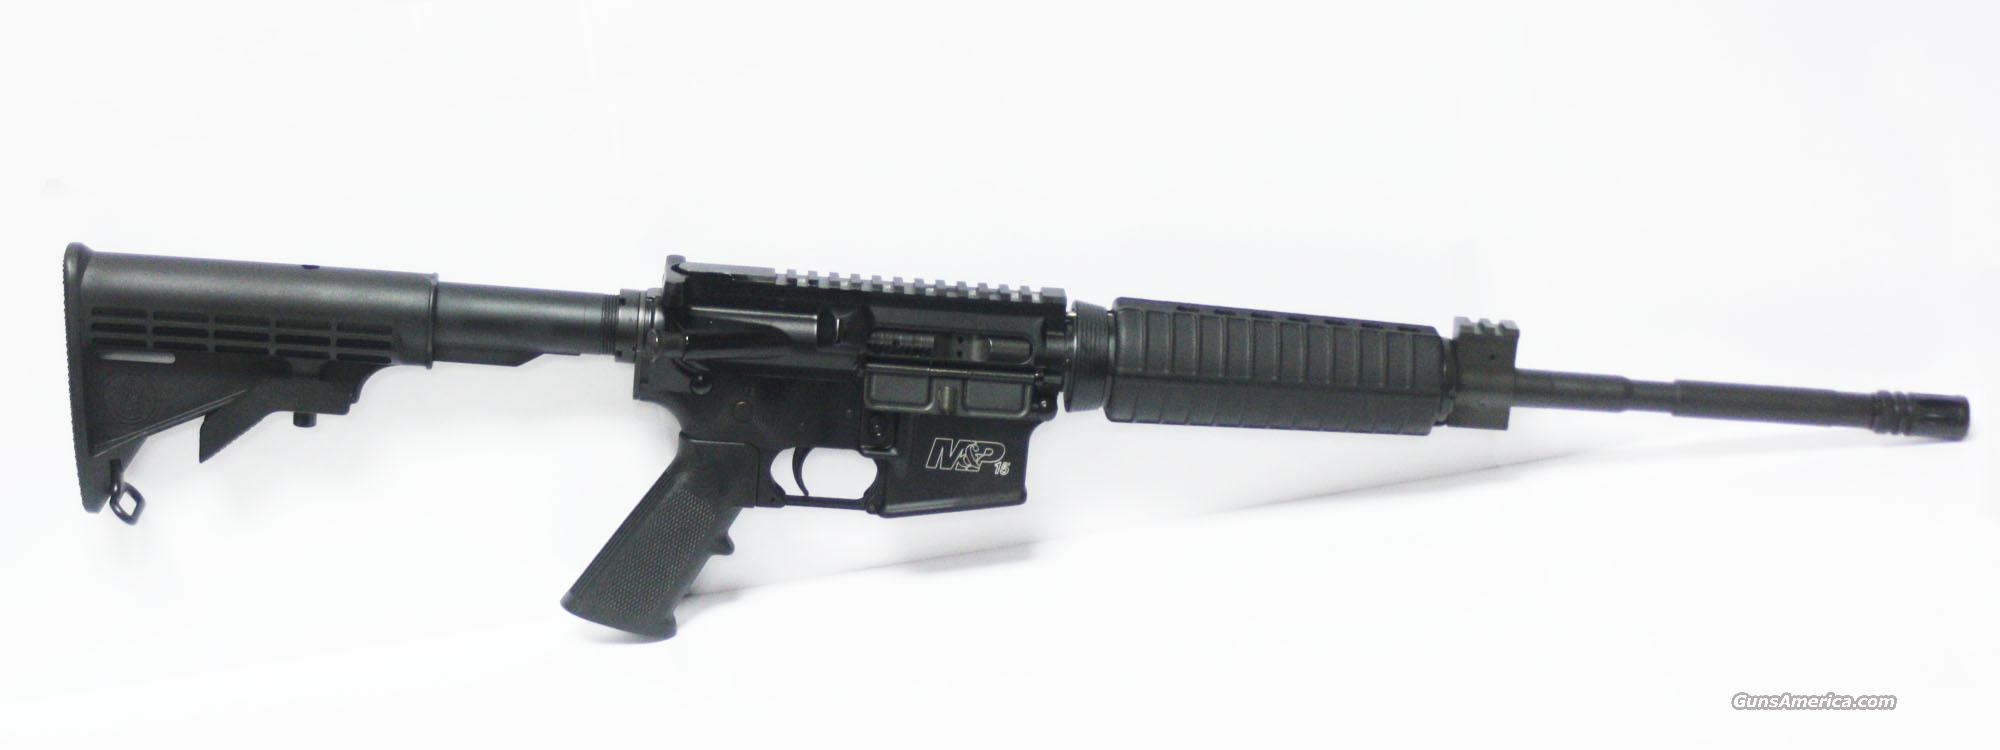 SMITH & WESSON M&P 15 223 OPTICS READY #811003 30 ROUND MAGAZINE NEW IN BOX  Guns > Rifles > Smith & Wesson Rifles > M&P